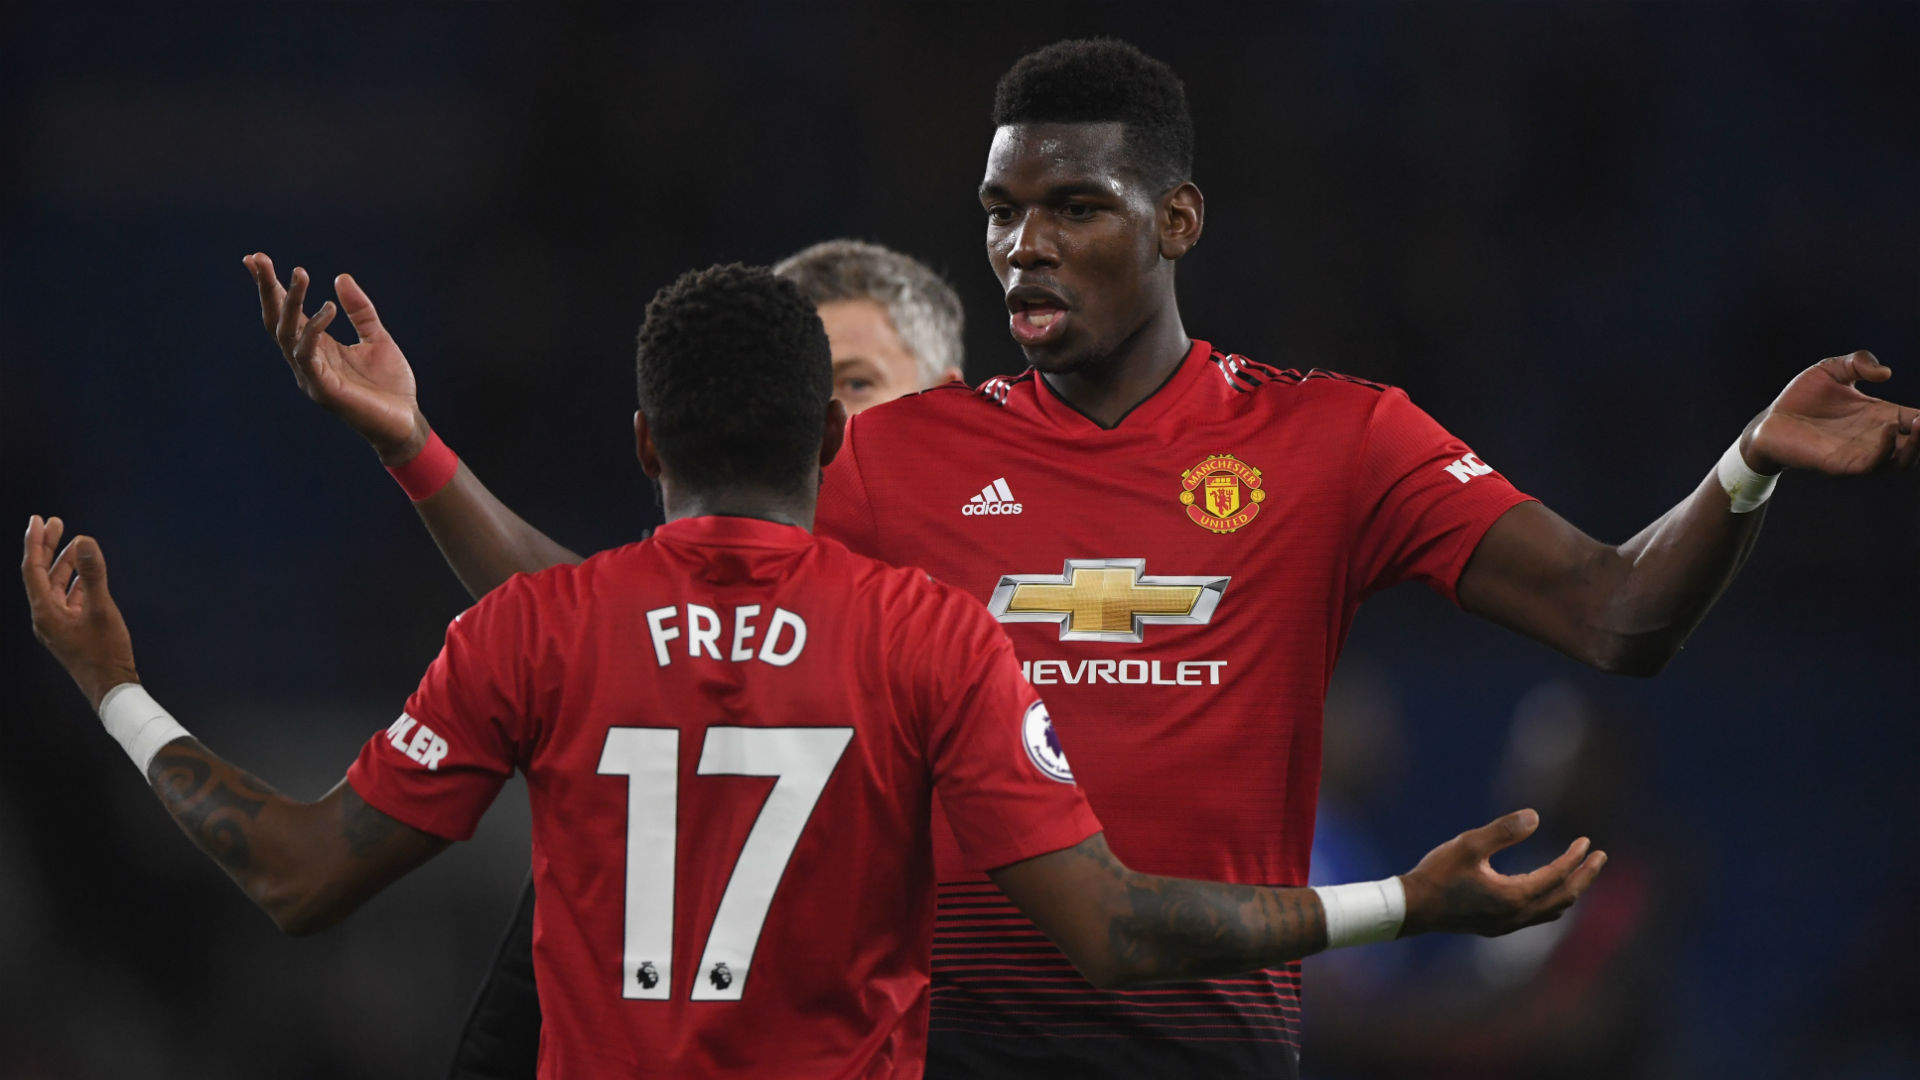 manchester united news paul pogba fred is worst midfield since park rafael paul parker sees nothing good about red devils goal com manchester united news paul pogba